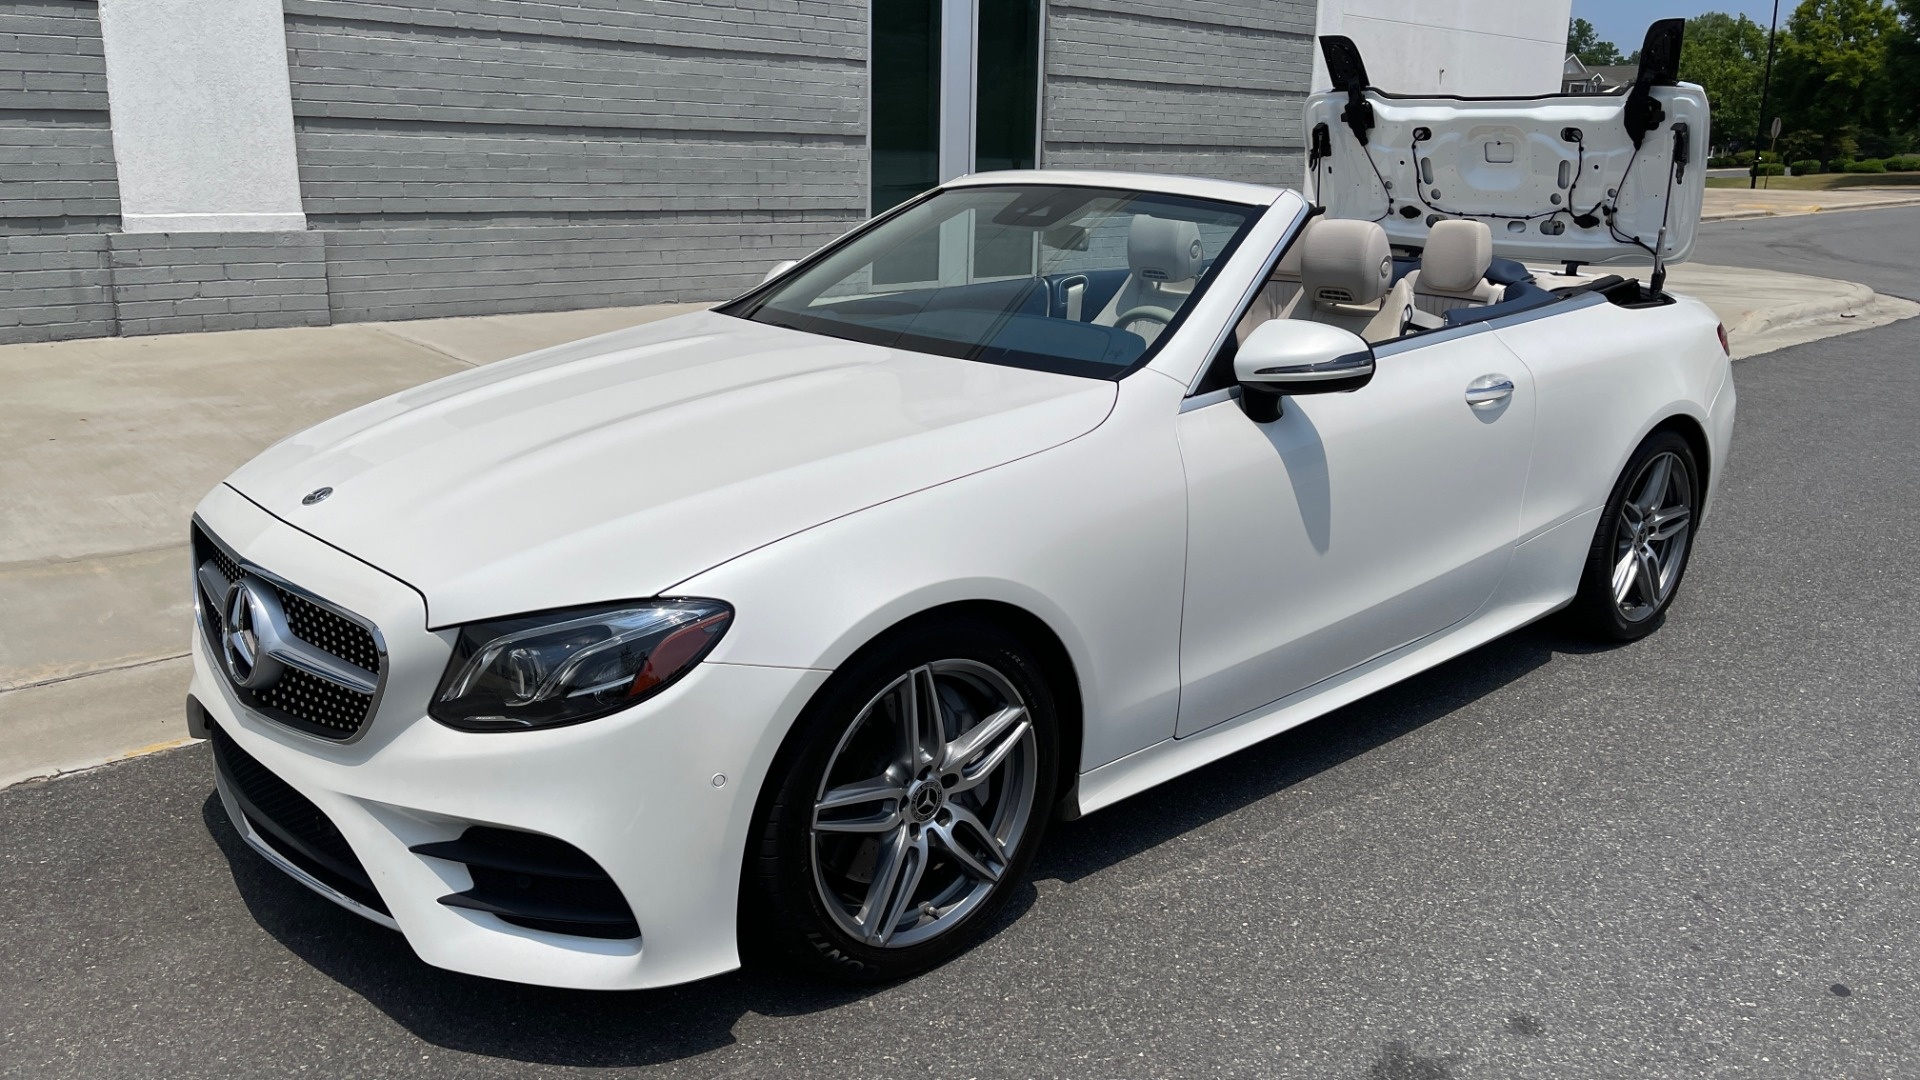 Used 2018 Mercedes-Benz E-CLASS E 400 CABRIOLET / PREM PKG / AMG LINE / NAV / REARVIEW for sale Sold at Formula Imports in Charlotte NC 28227 10